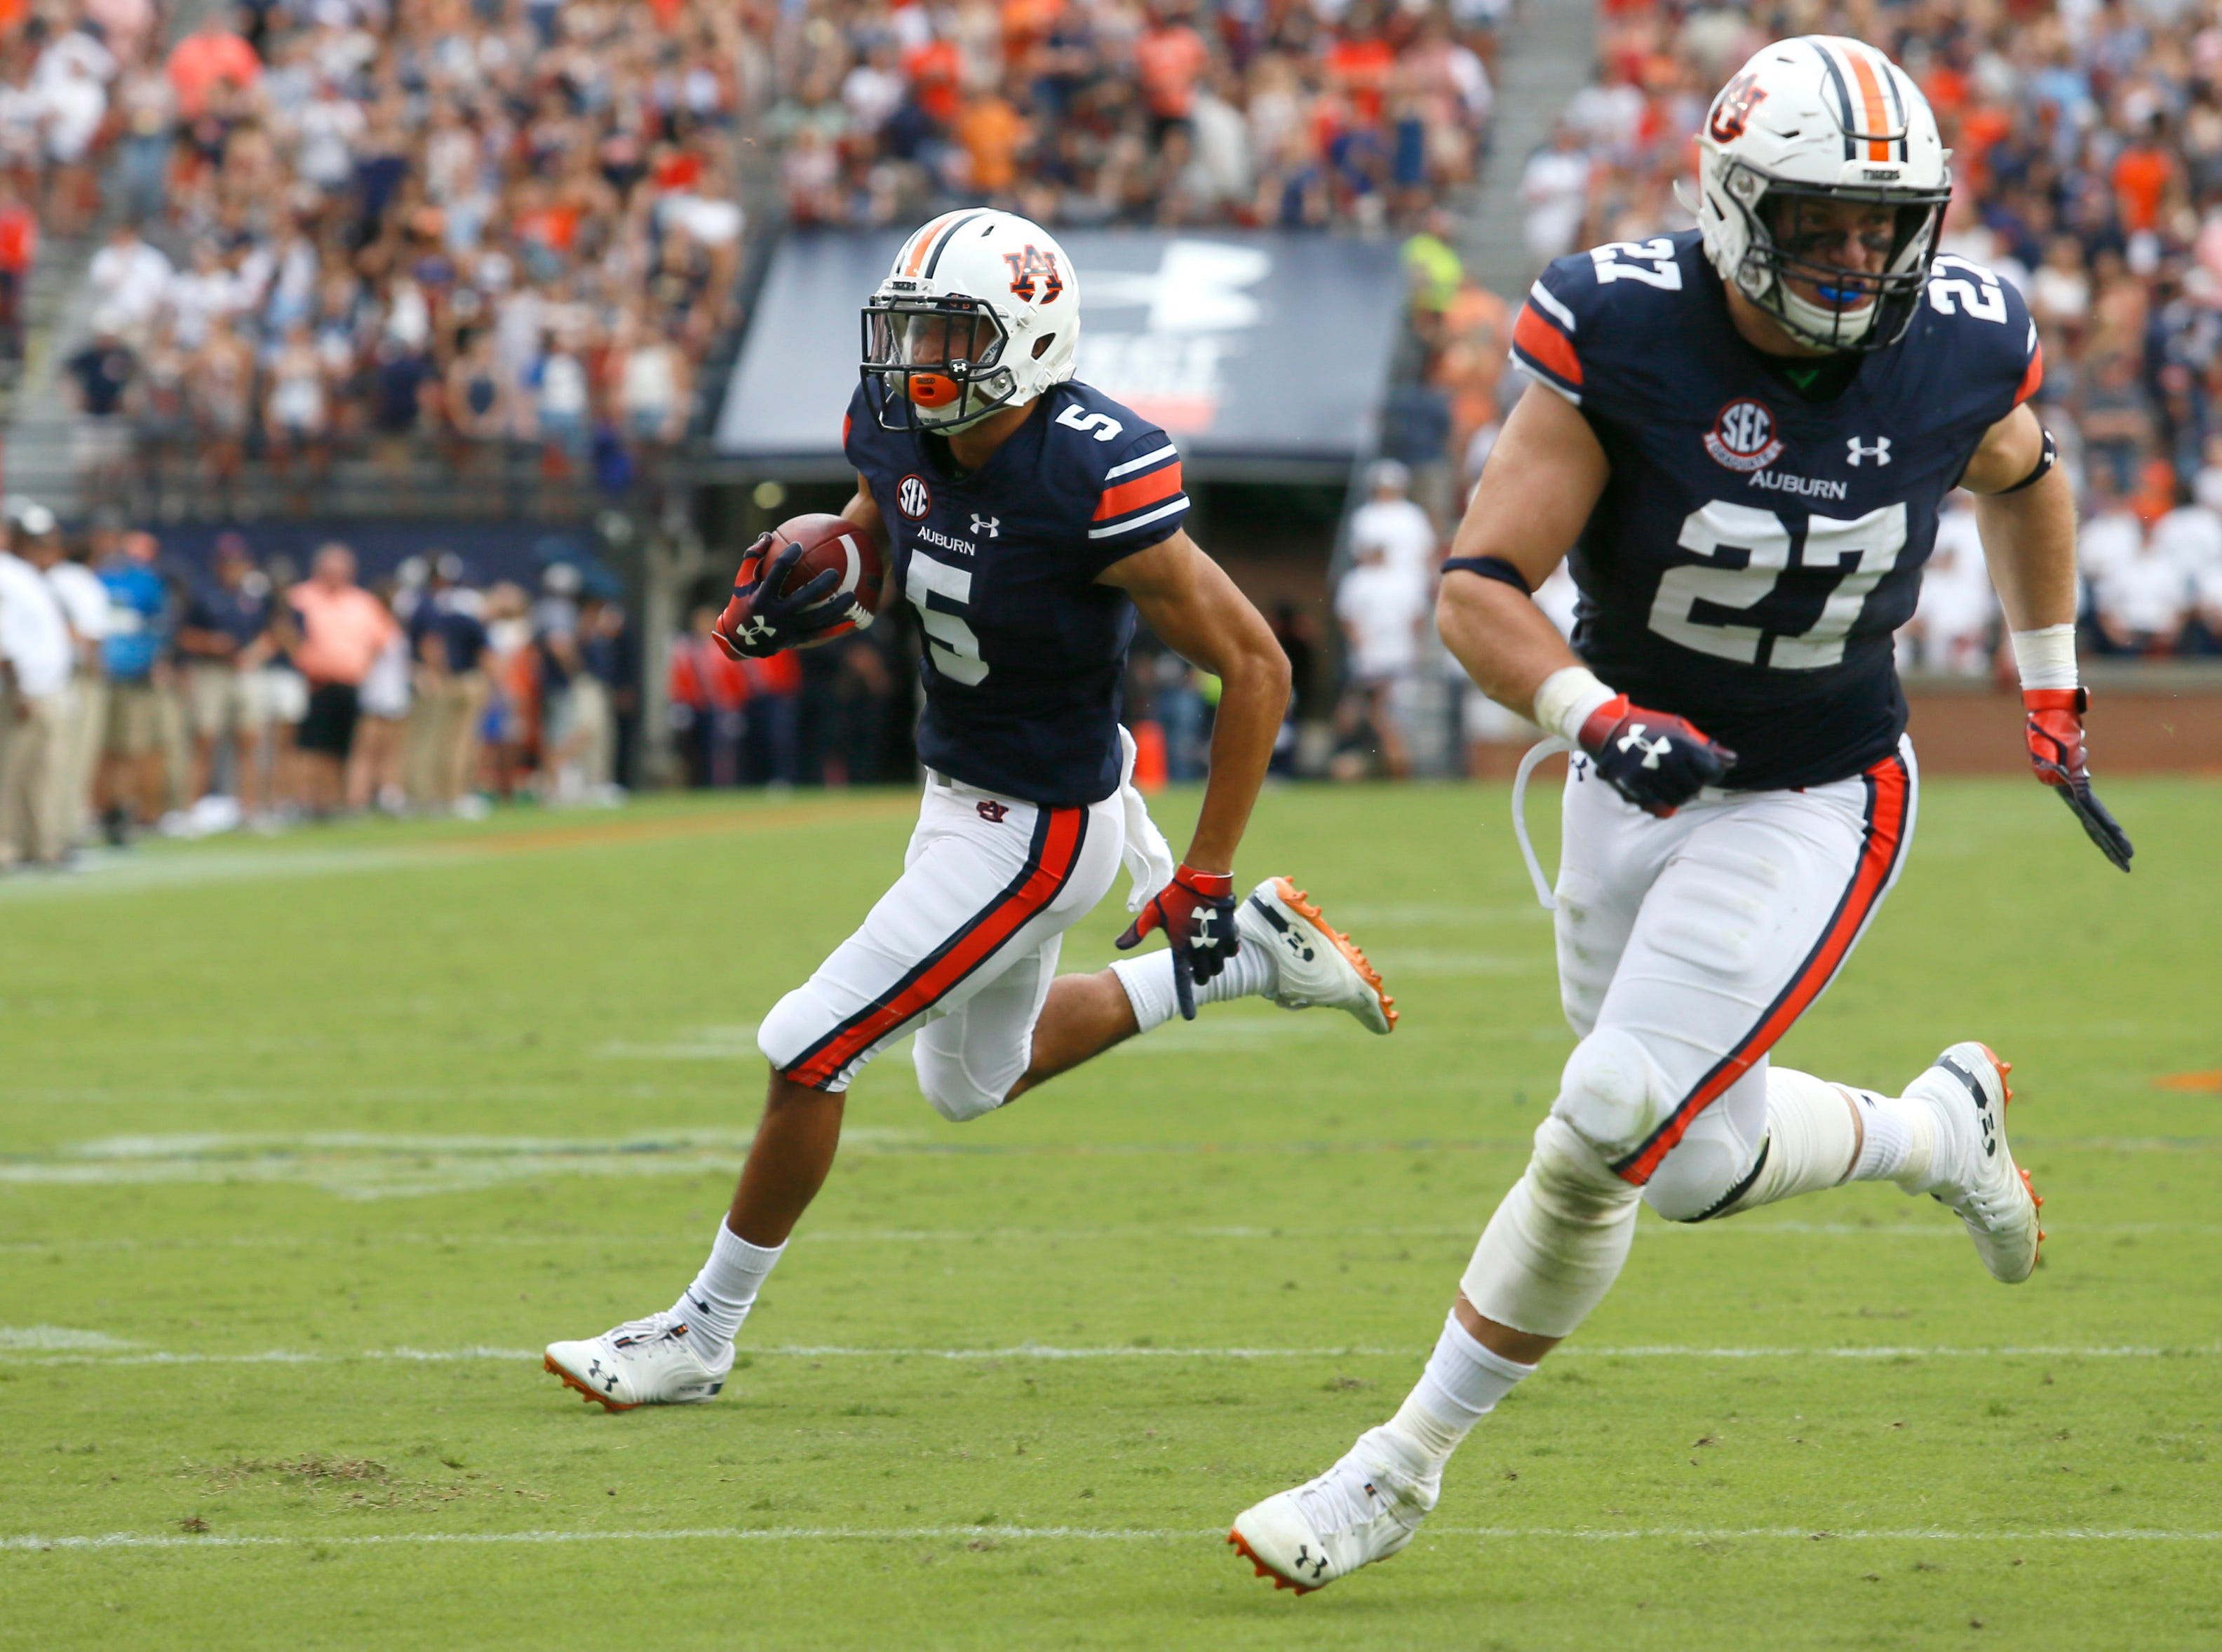 Sep 29, 2018; Auburn, AL, USA; Auburn Tigers receiver Anthony Schwartz (5) runs behind fullback Chandler Cox (27) and scores a touchdown against the Southern Miss Golden Eagles during the second quarter at Jordan-Hare Stadium. Mandatory Credit: John Reed-USA TODAY Sports